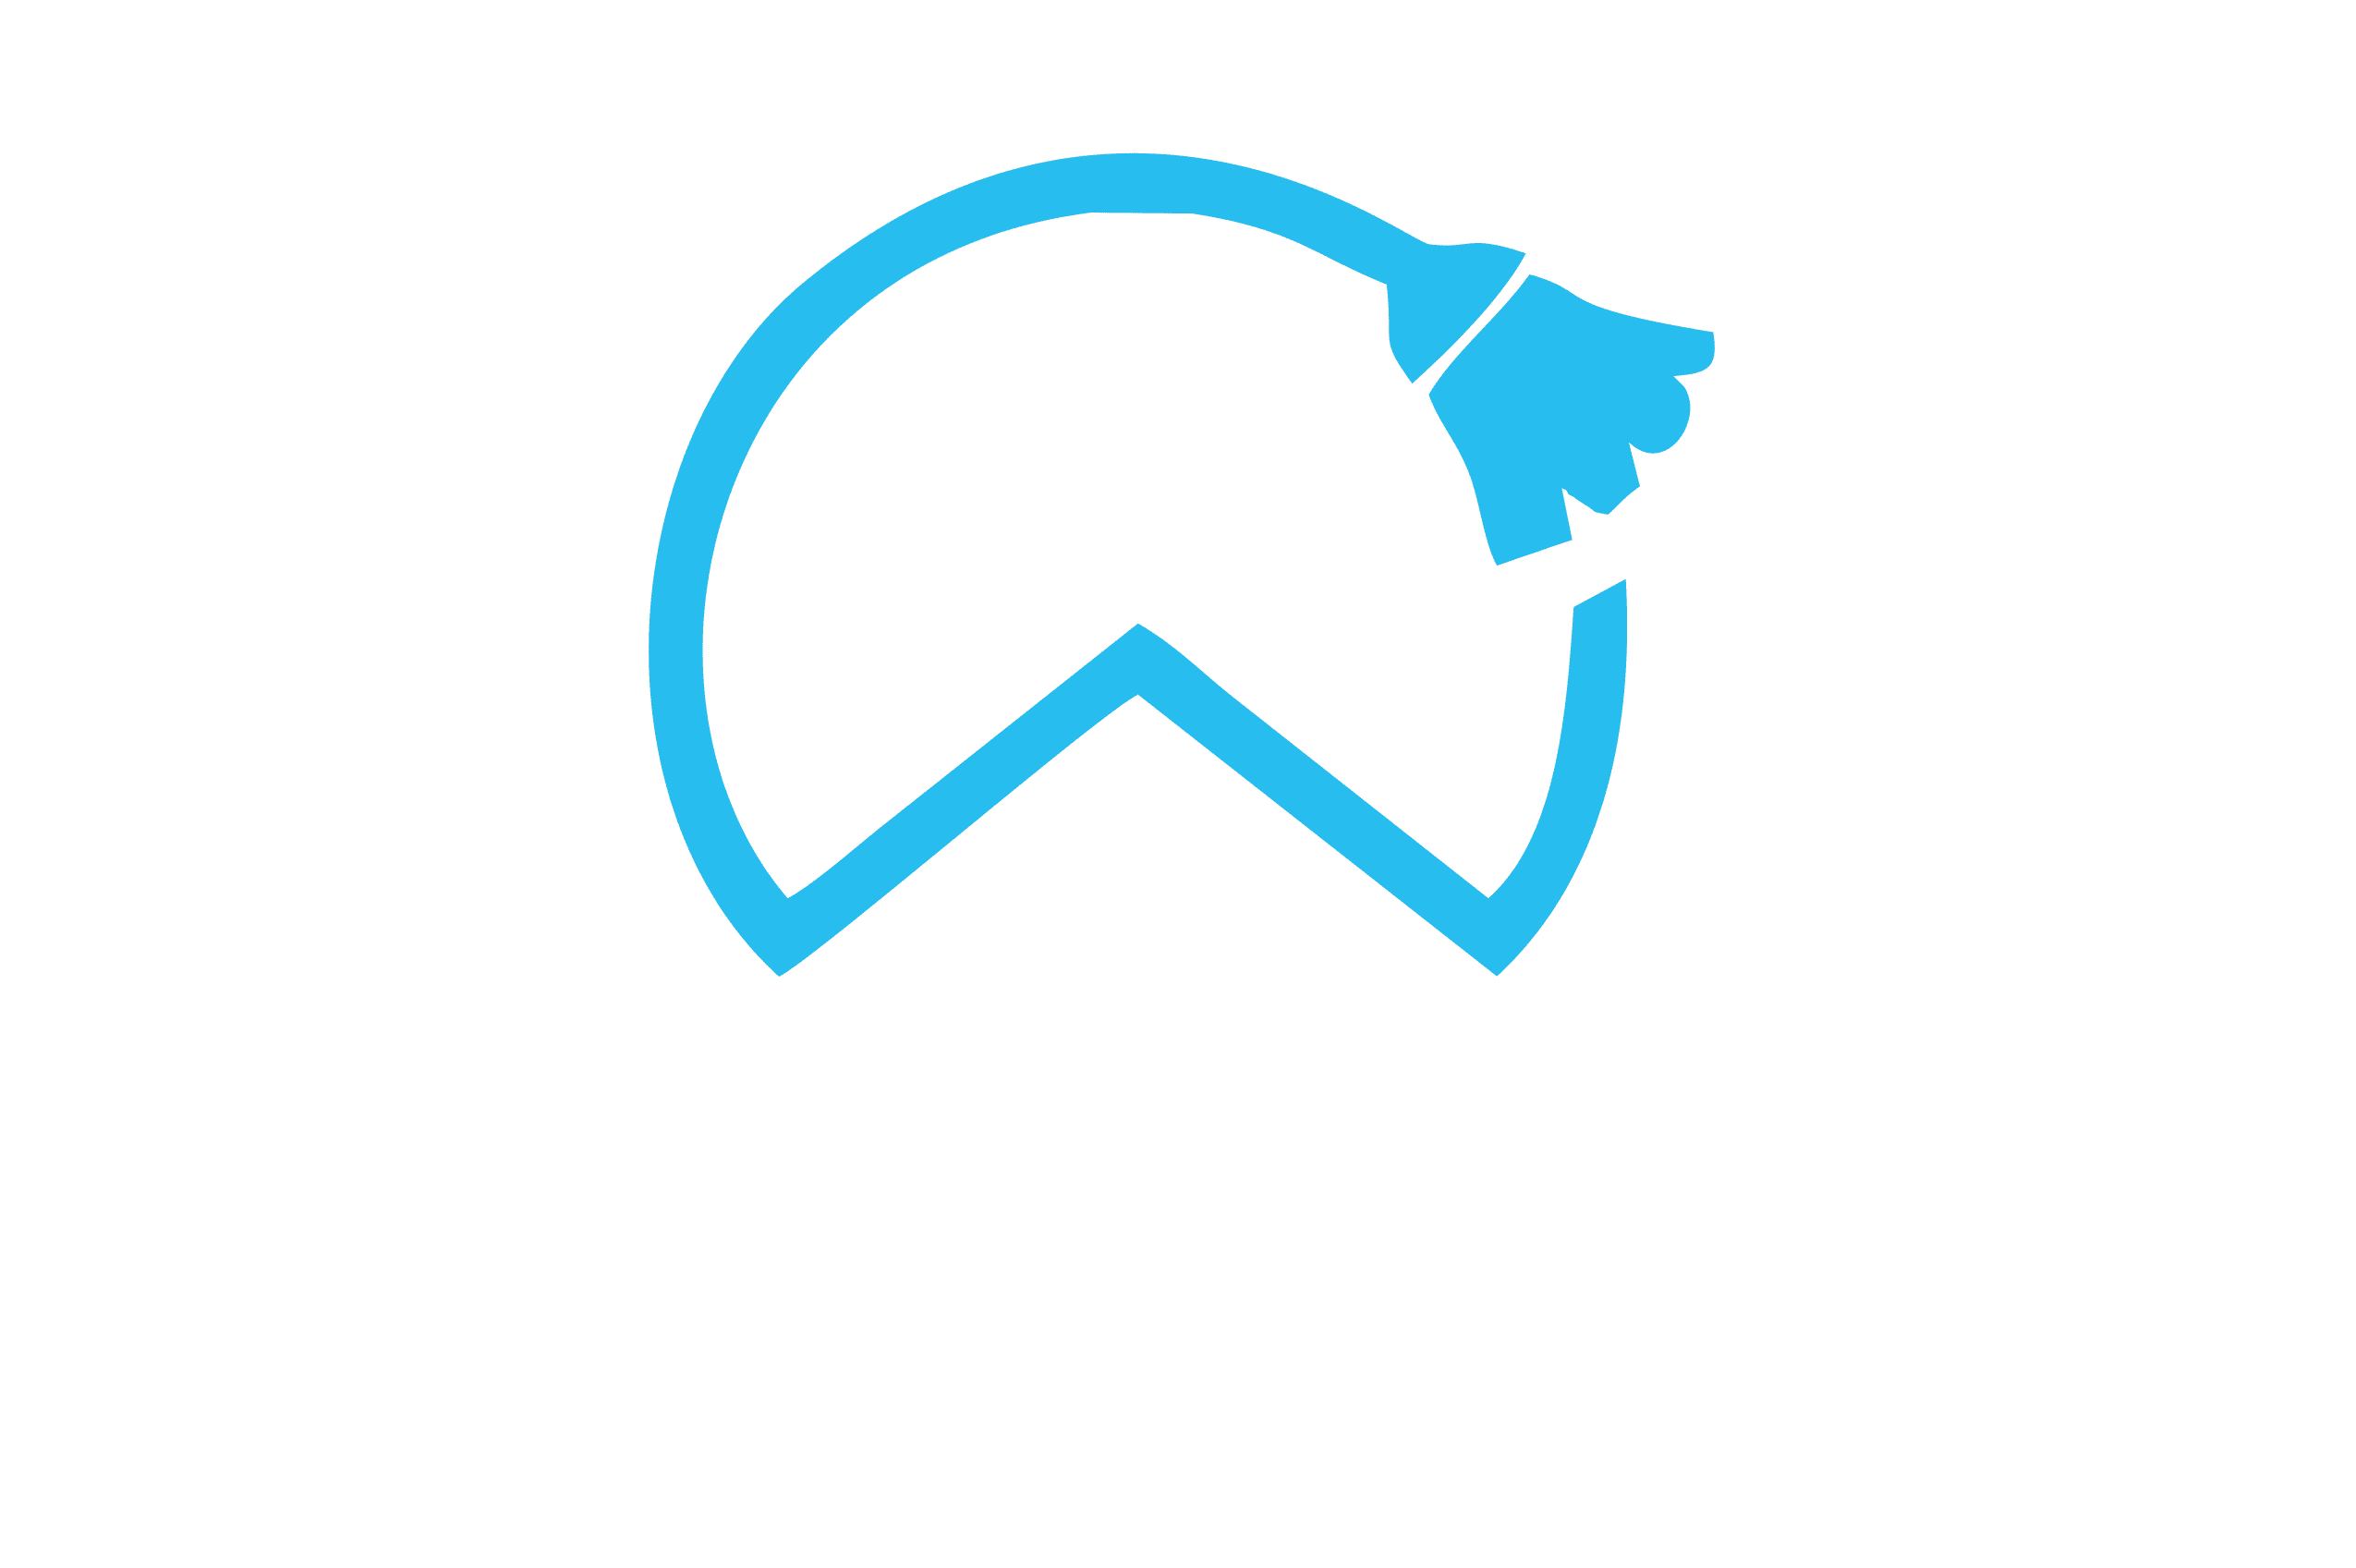 Logo M7 Cleaning